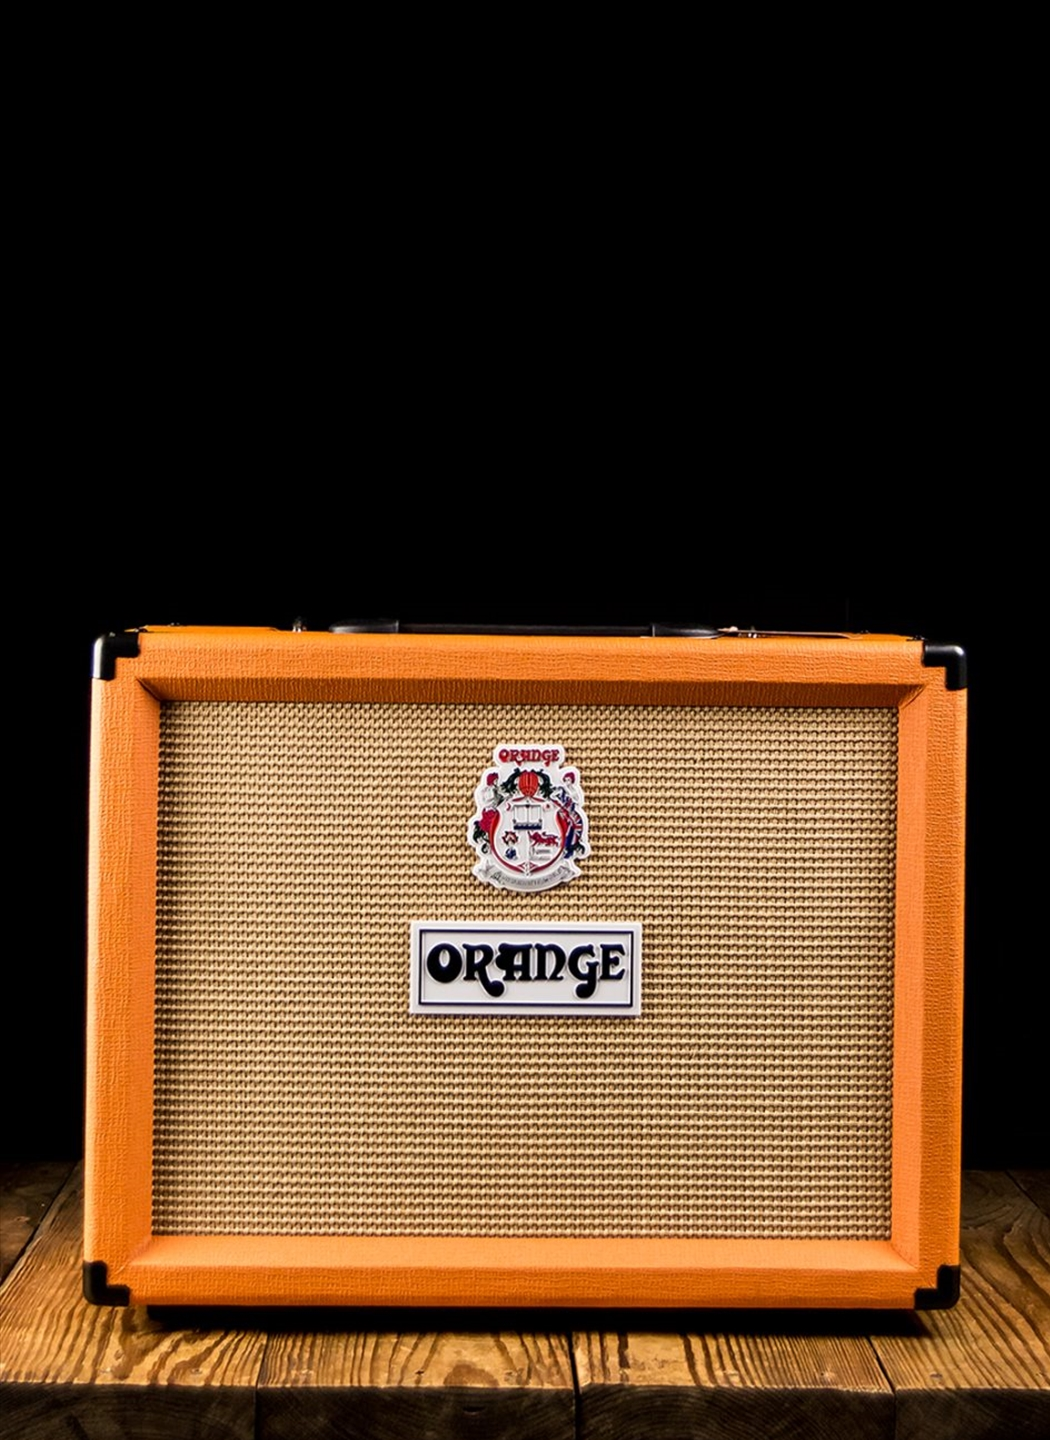 Orange Rocker 32 30 Watt 2x10 Guitar Combo Amplifier Tap To Expand